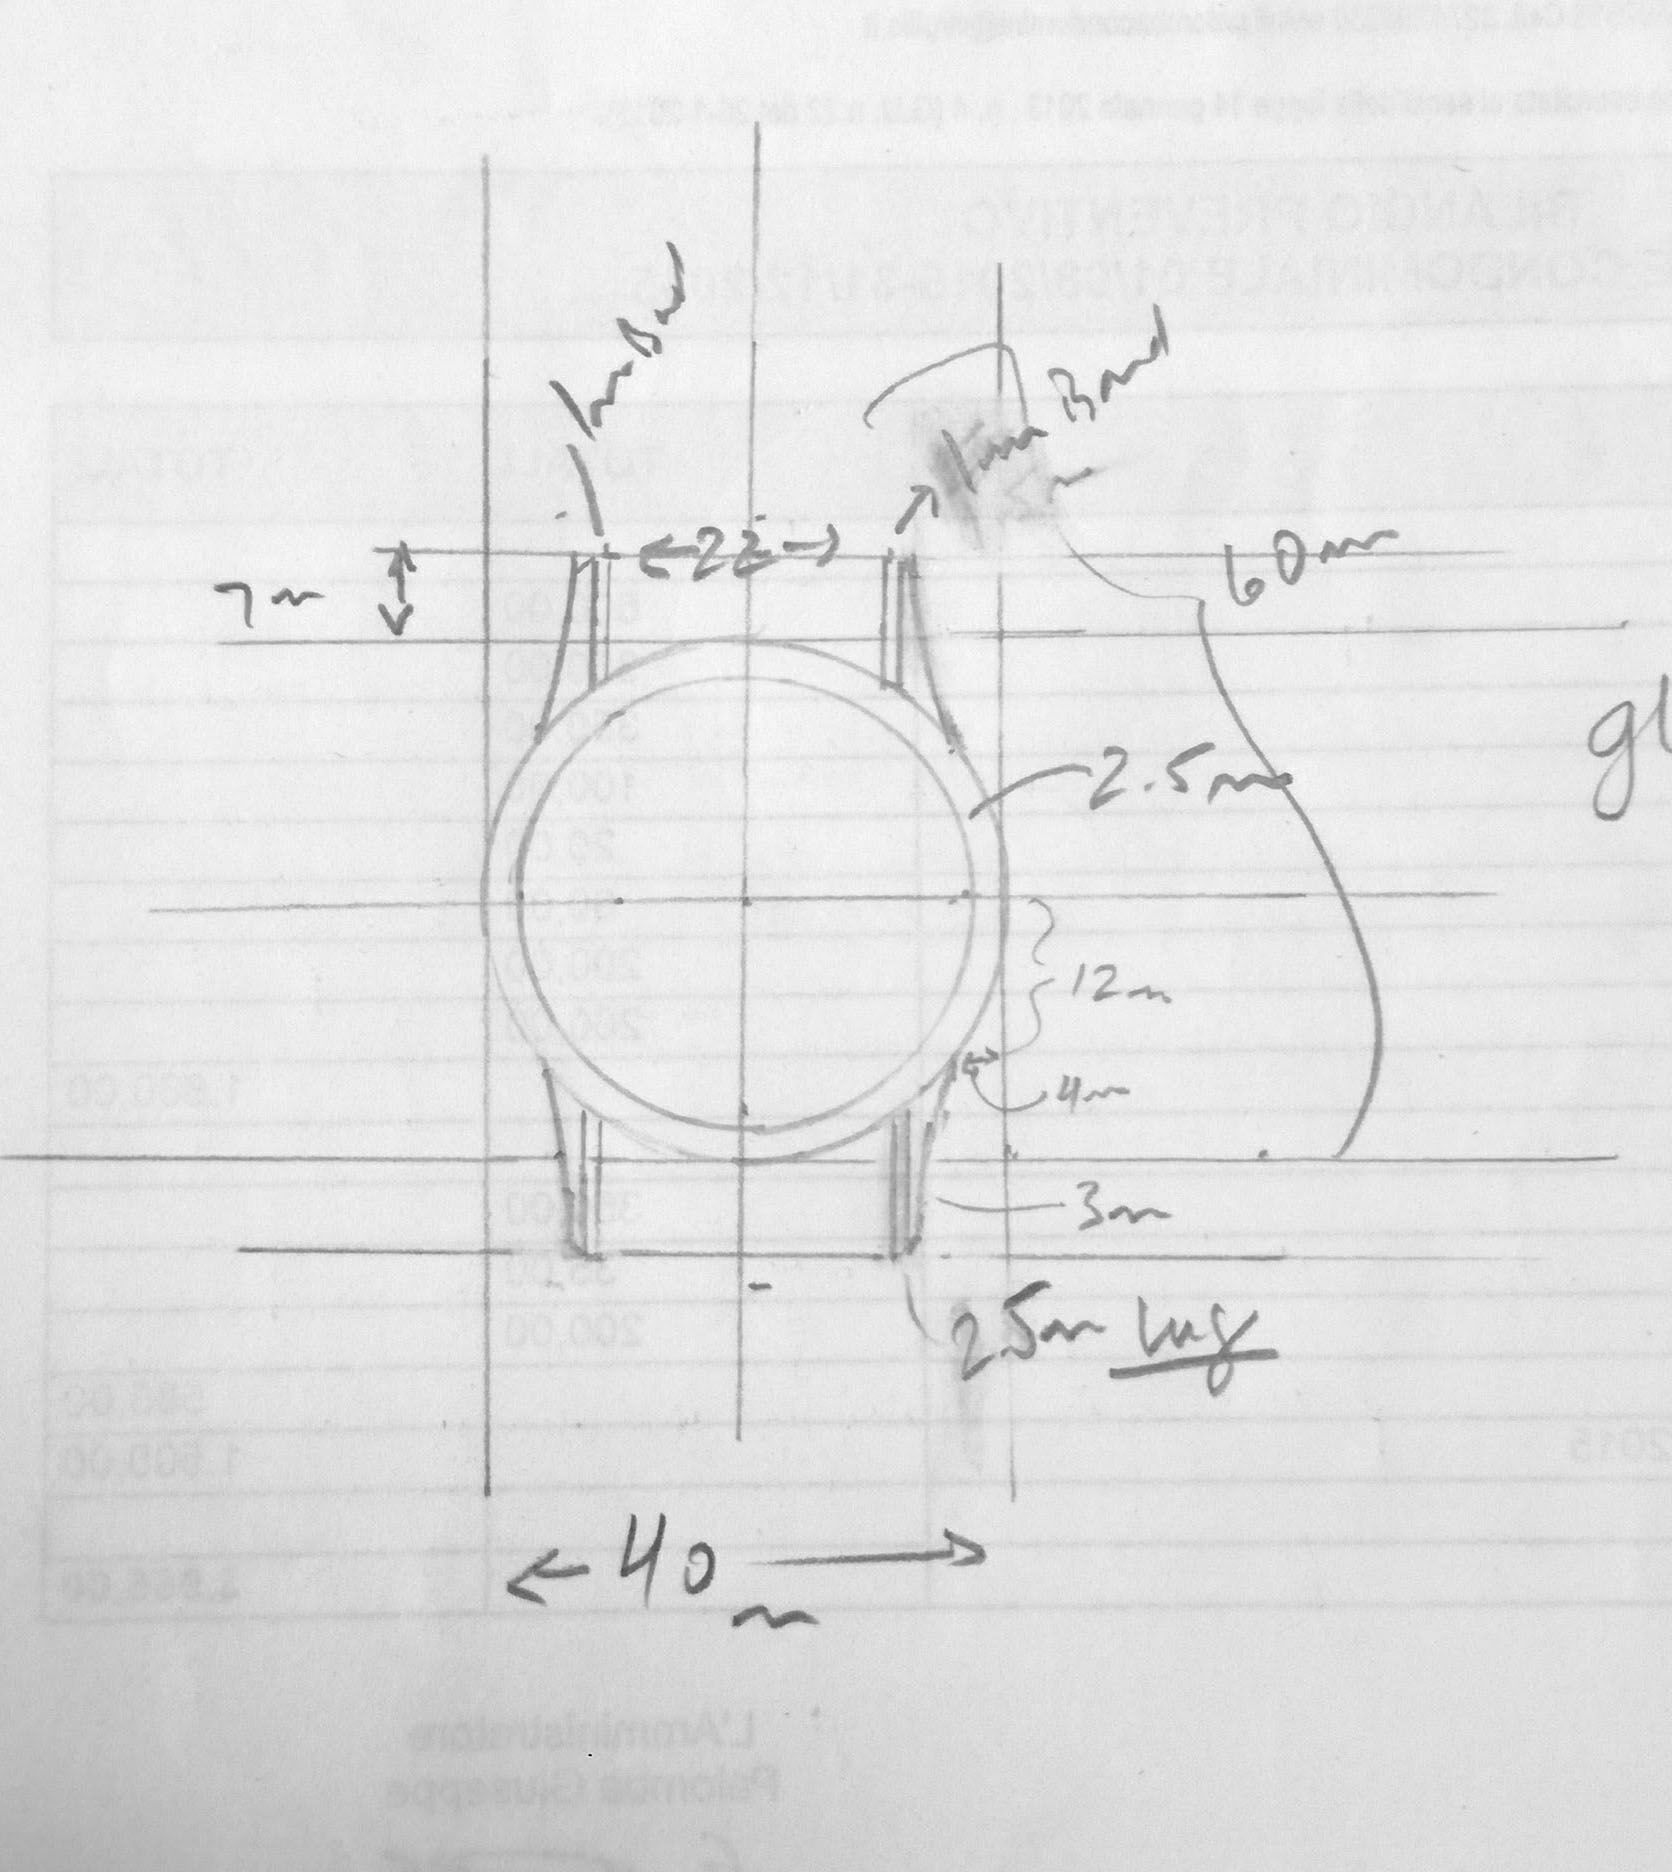 Measurements for case, lugs taking inspiration from Rolex ref. 5113.